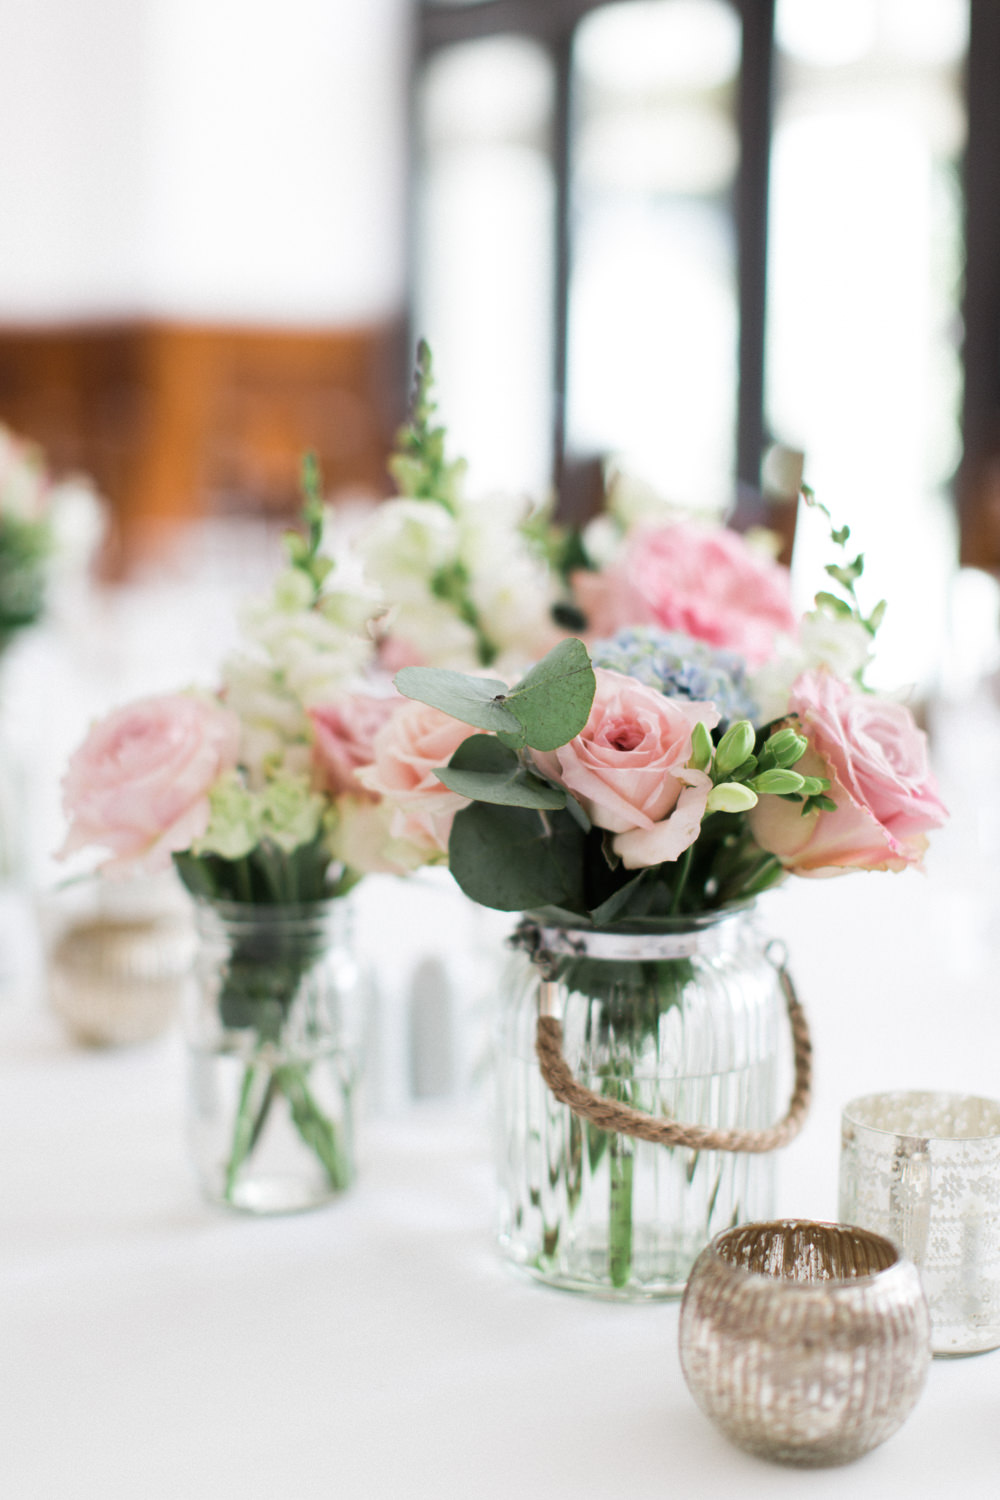 Pastel Flower in Jars Wedding Decor